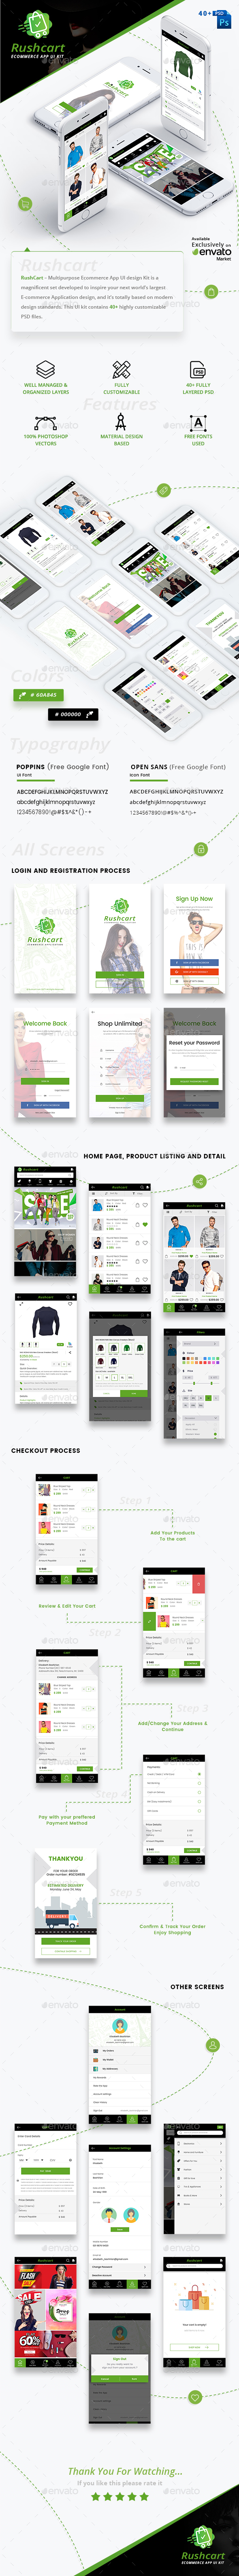 RushCart  - Multipurpose Ecommerce App UI Kit - User Interfaces Web Elements